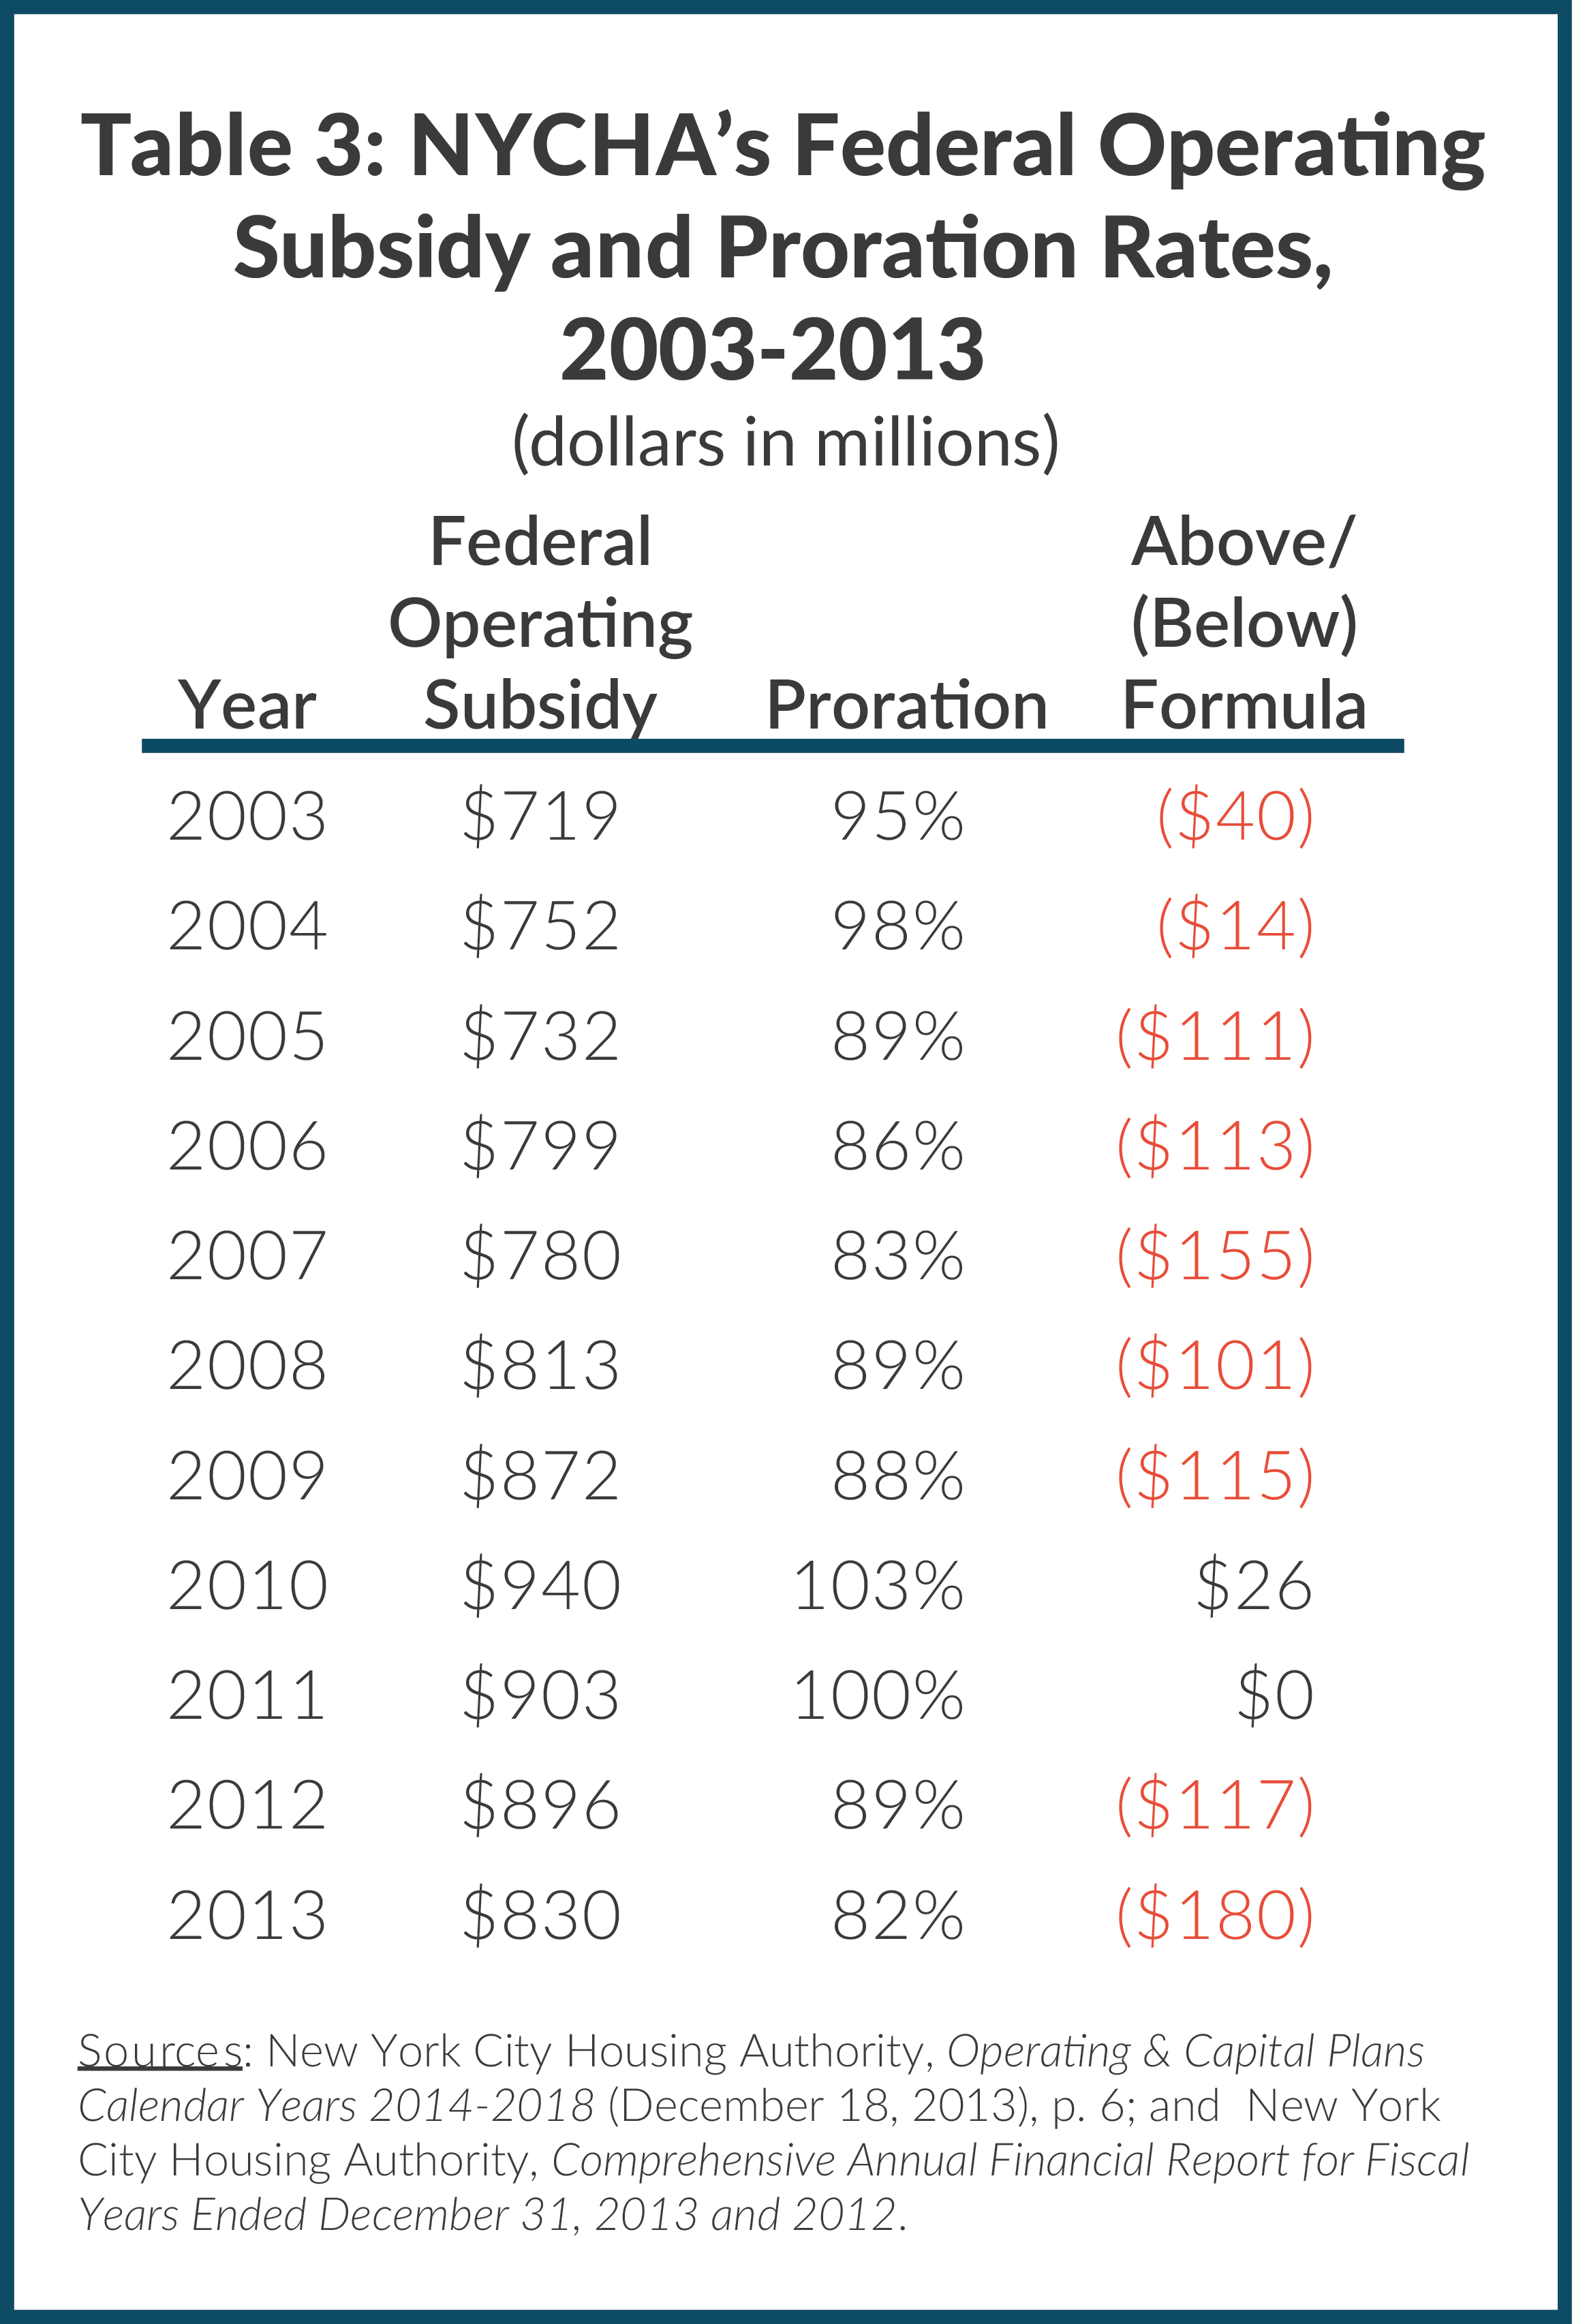 Table 3: NYCHA's Federal Operating Subsidy and Proration Rates, 2003-2013